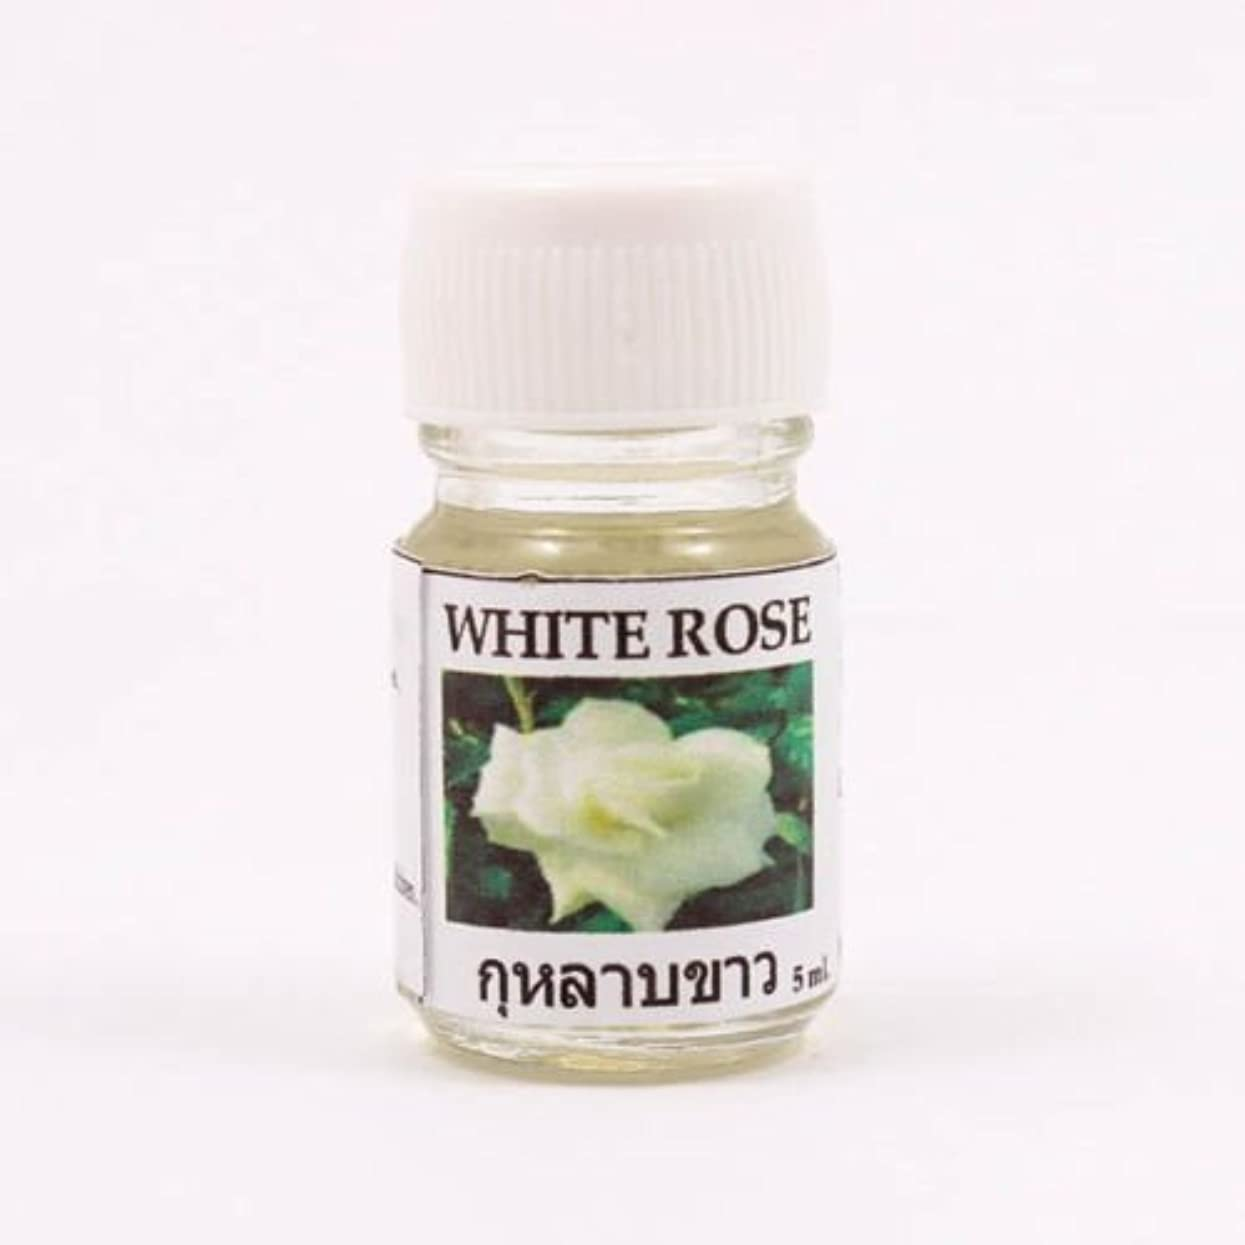 無し鋼サービス6X White Rose Aroma Fragrance Essential Oil 5ML. Diffuser Burner Therapy